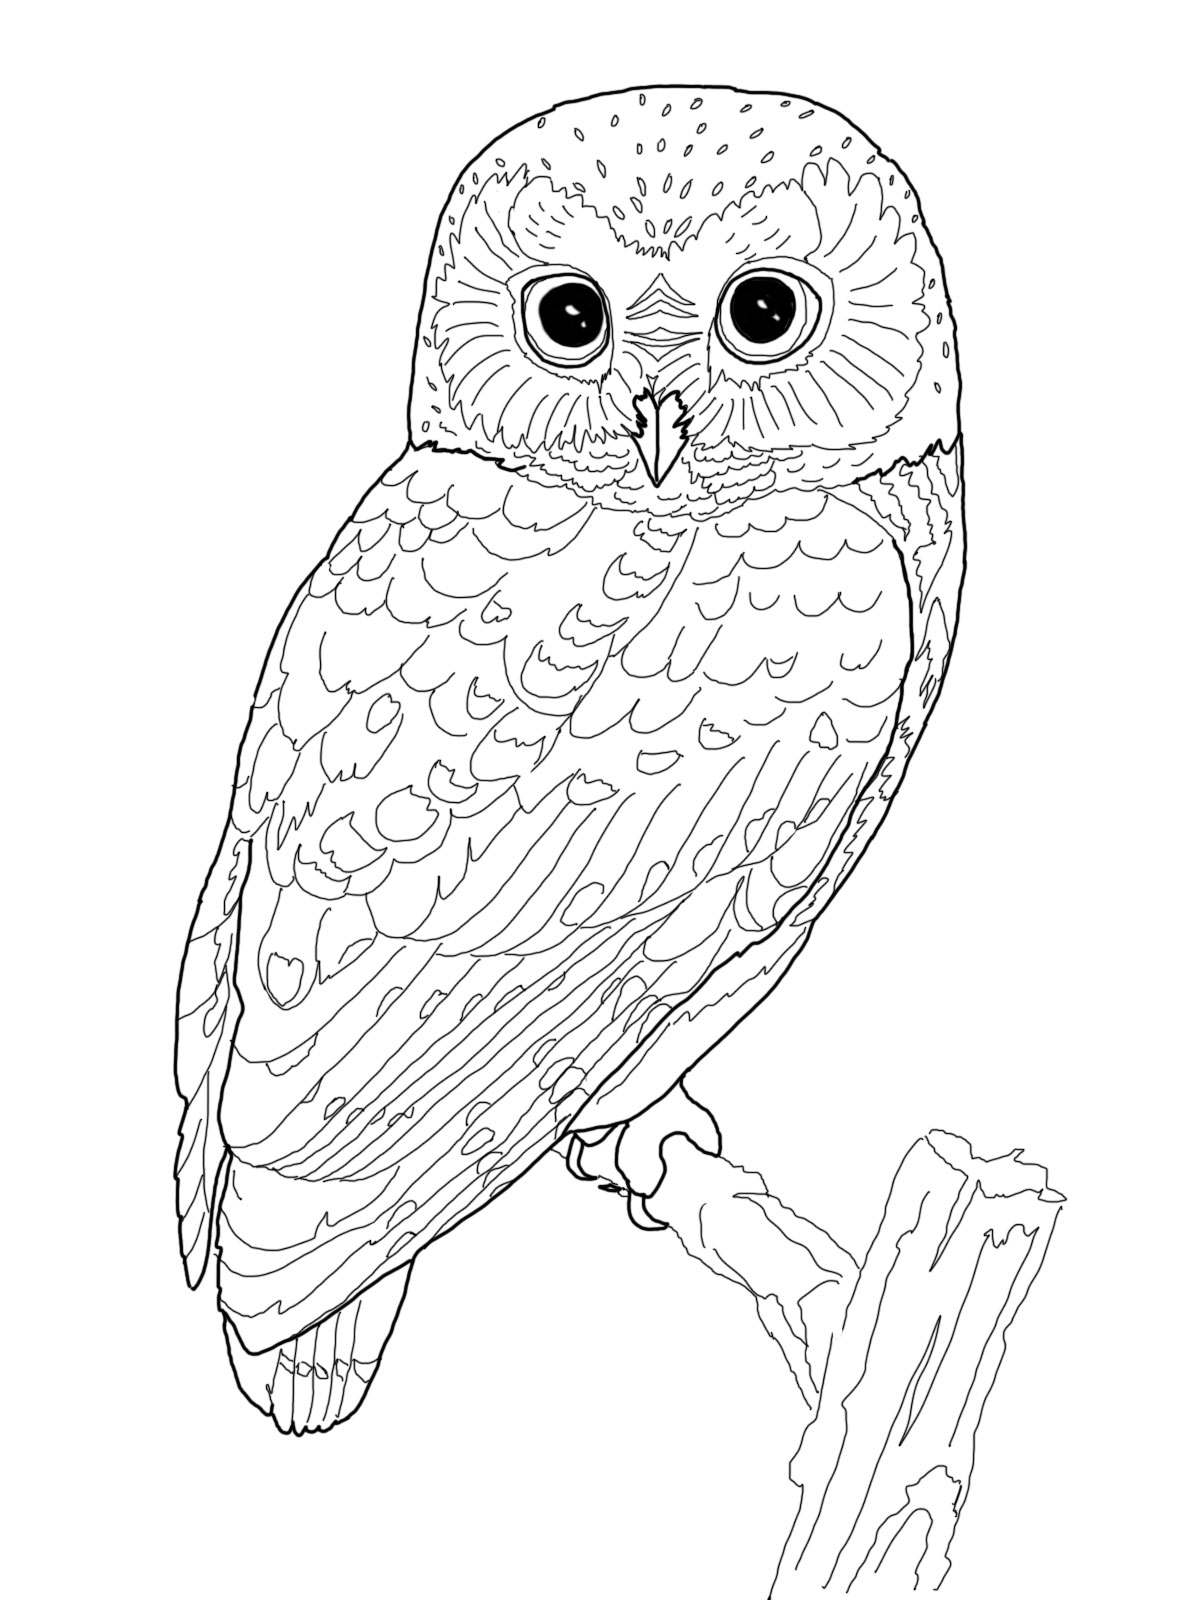 bird printable coloring pages printable birds coloring pages for adults realistic bird printable coloring pages